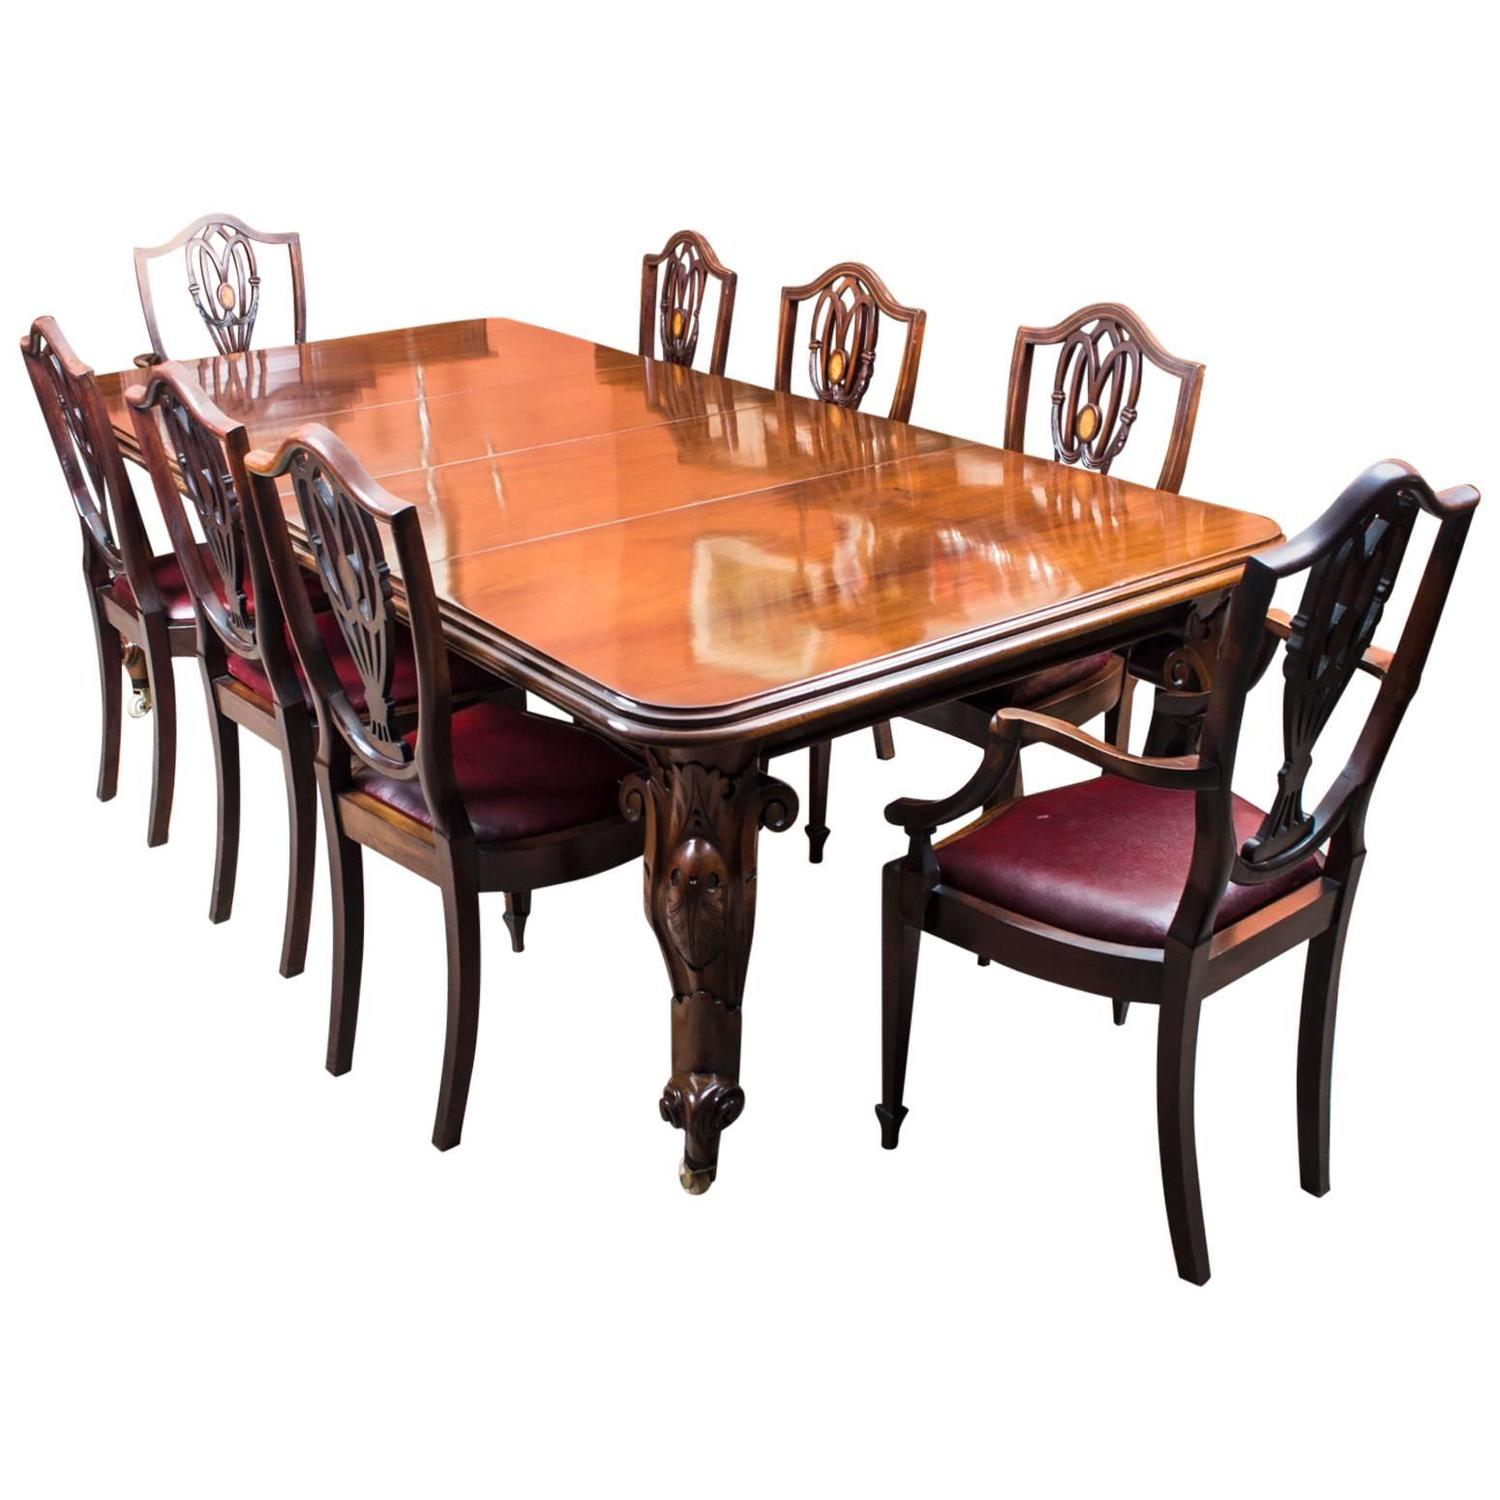 Antique Mahogany Dining Room Furniture: Antique Victorian Mahogany Dining Table And Eight Chairs